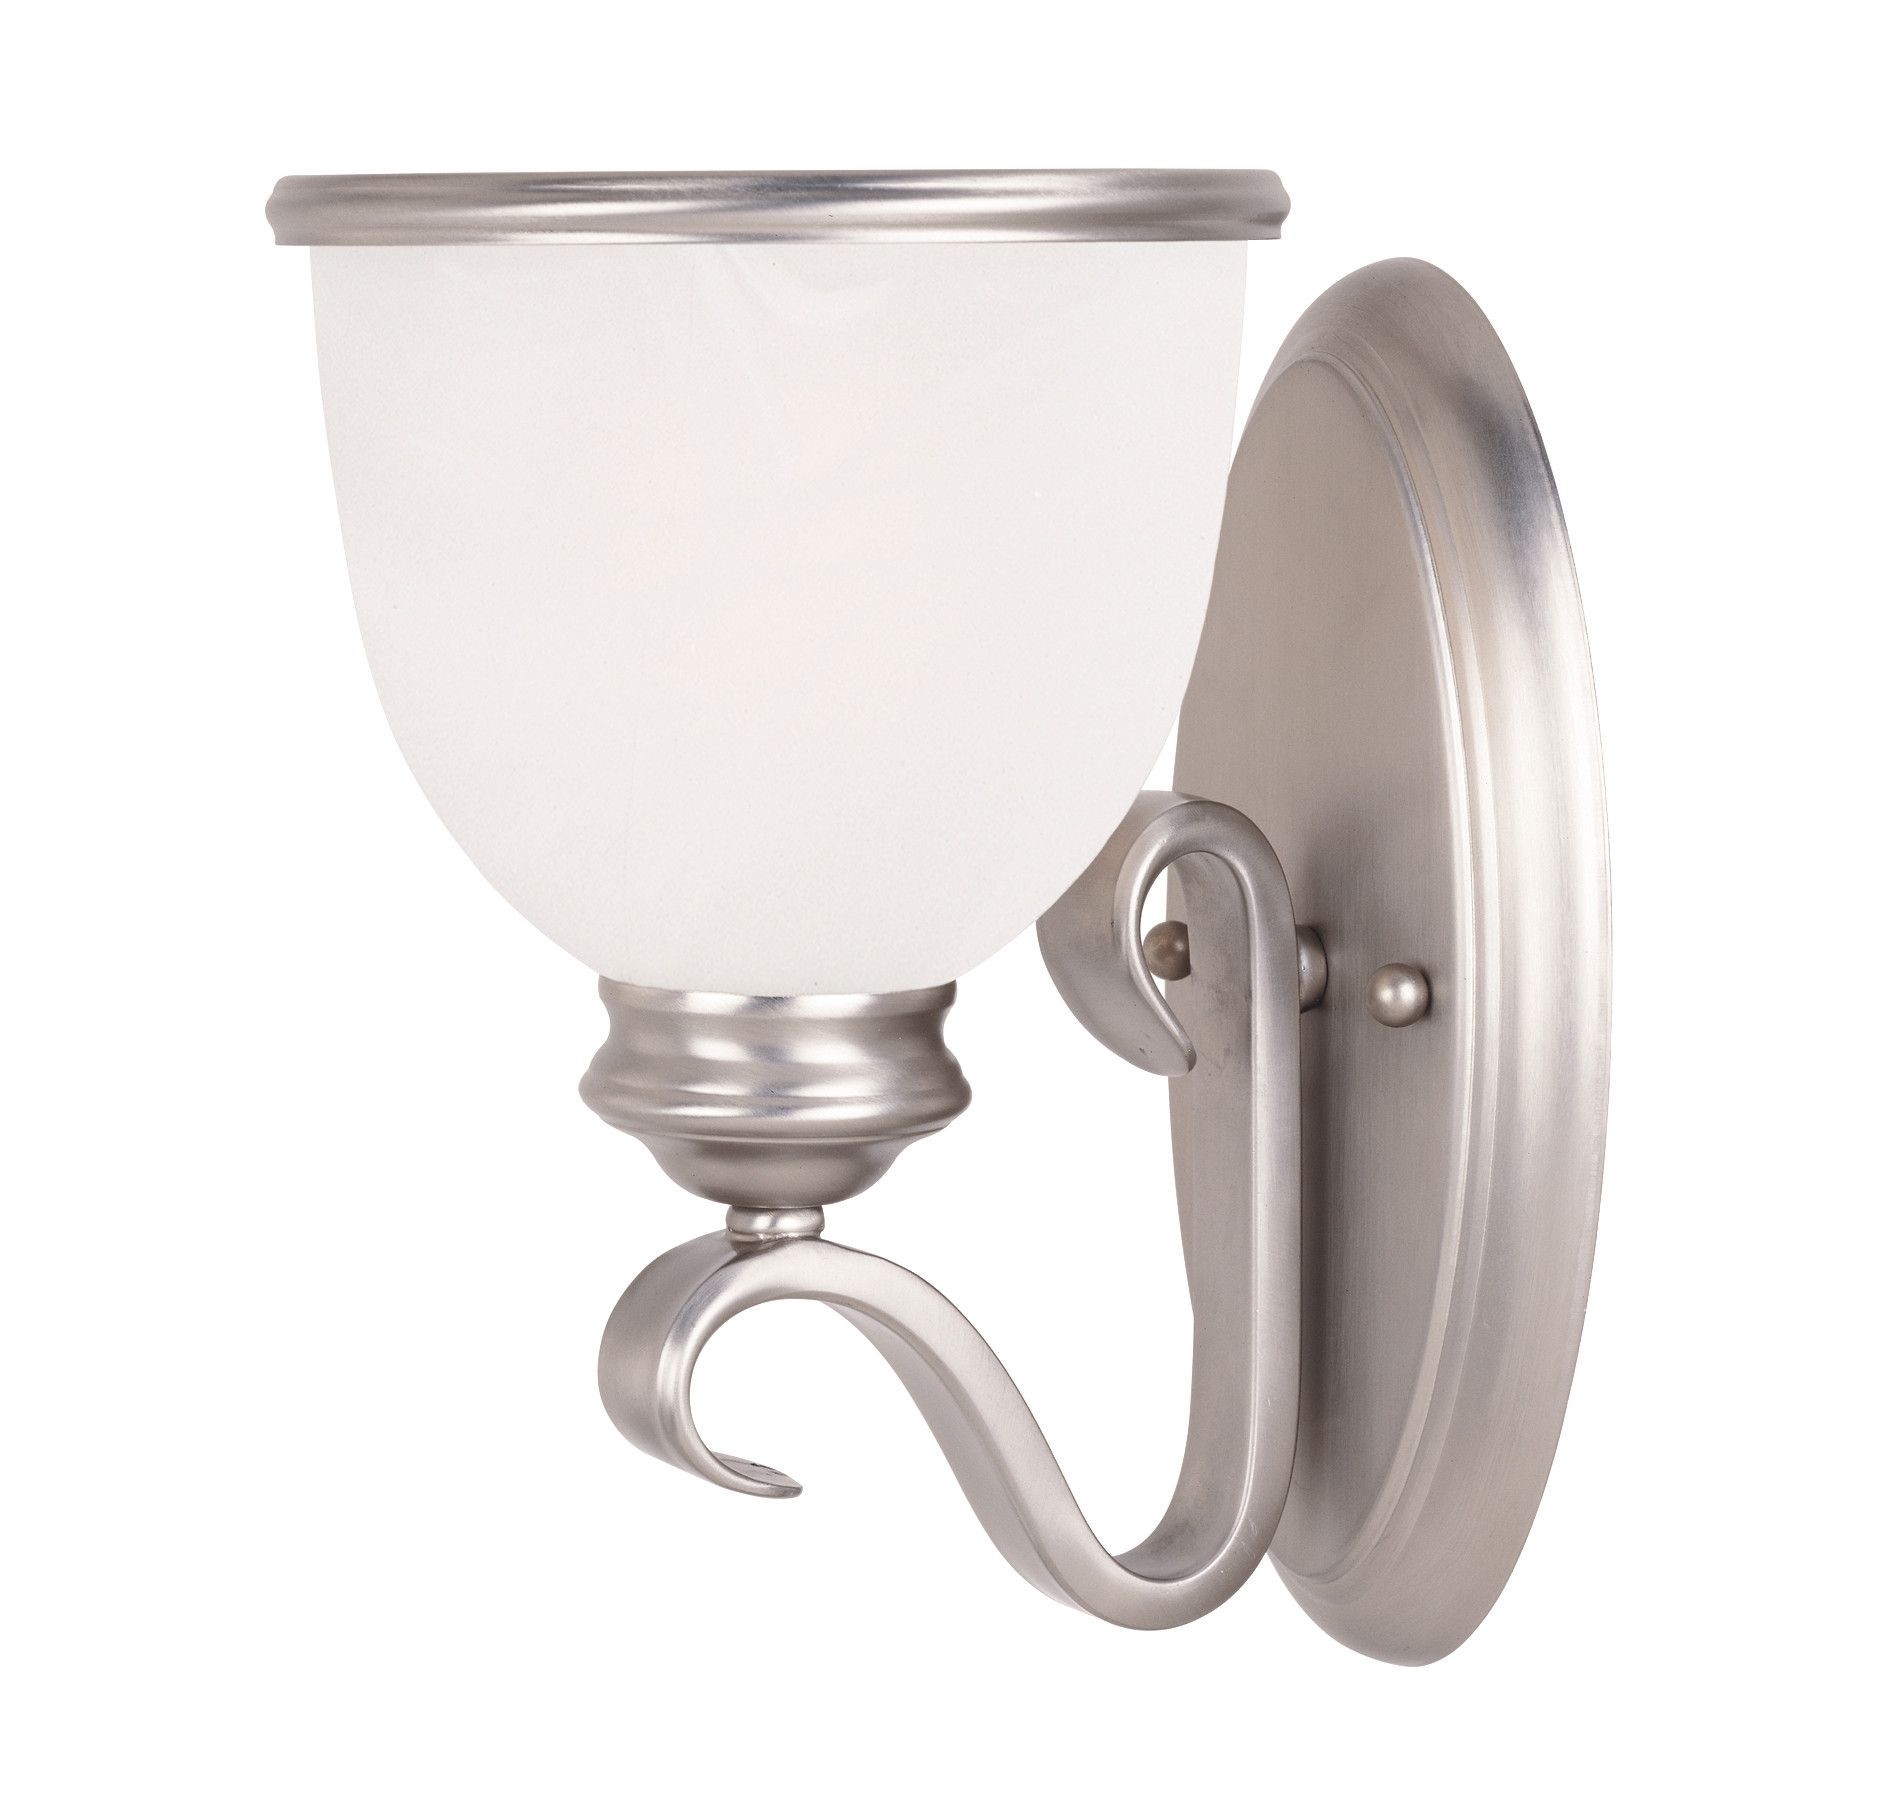 Willoughby 1-Light Wall Sconce in Pewter